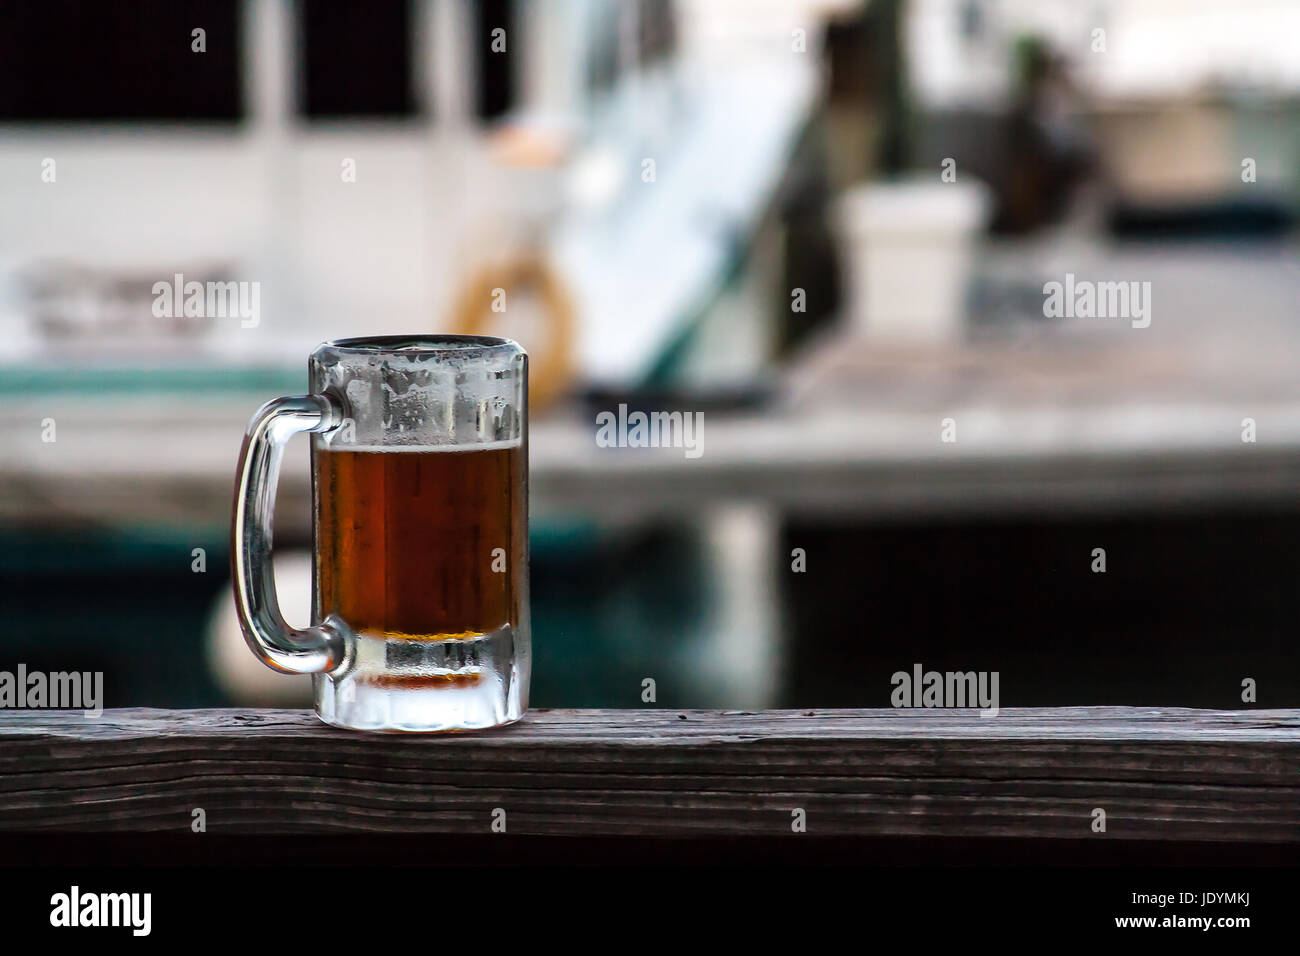 Close up of a beer during happy hour with boats in the background - Stock Image